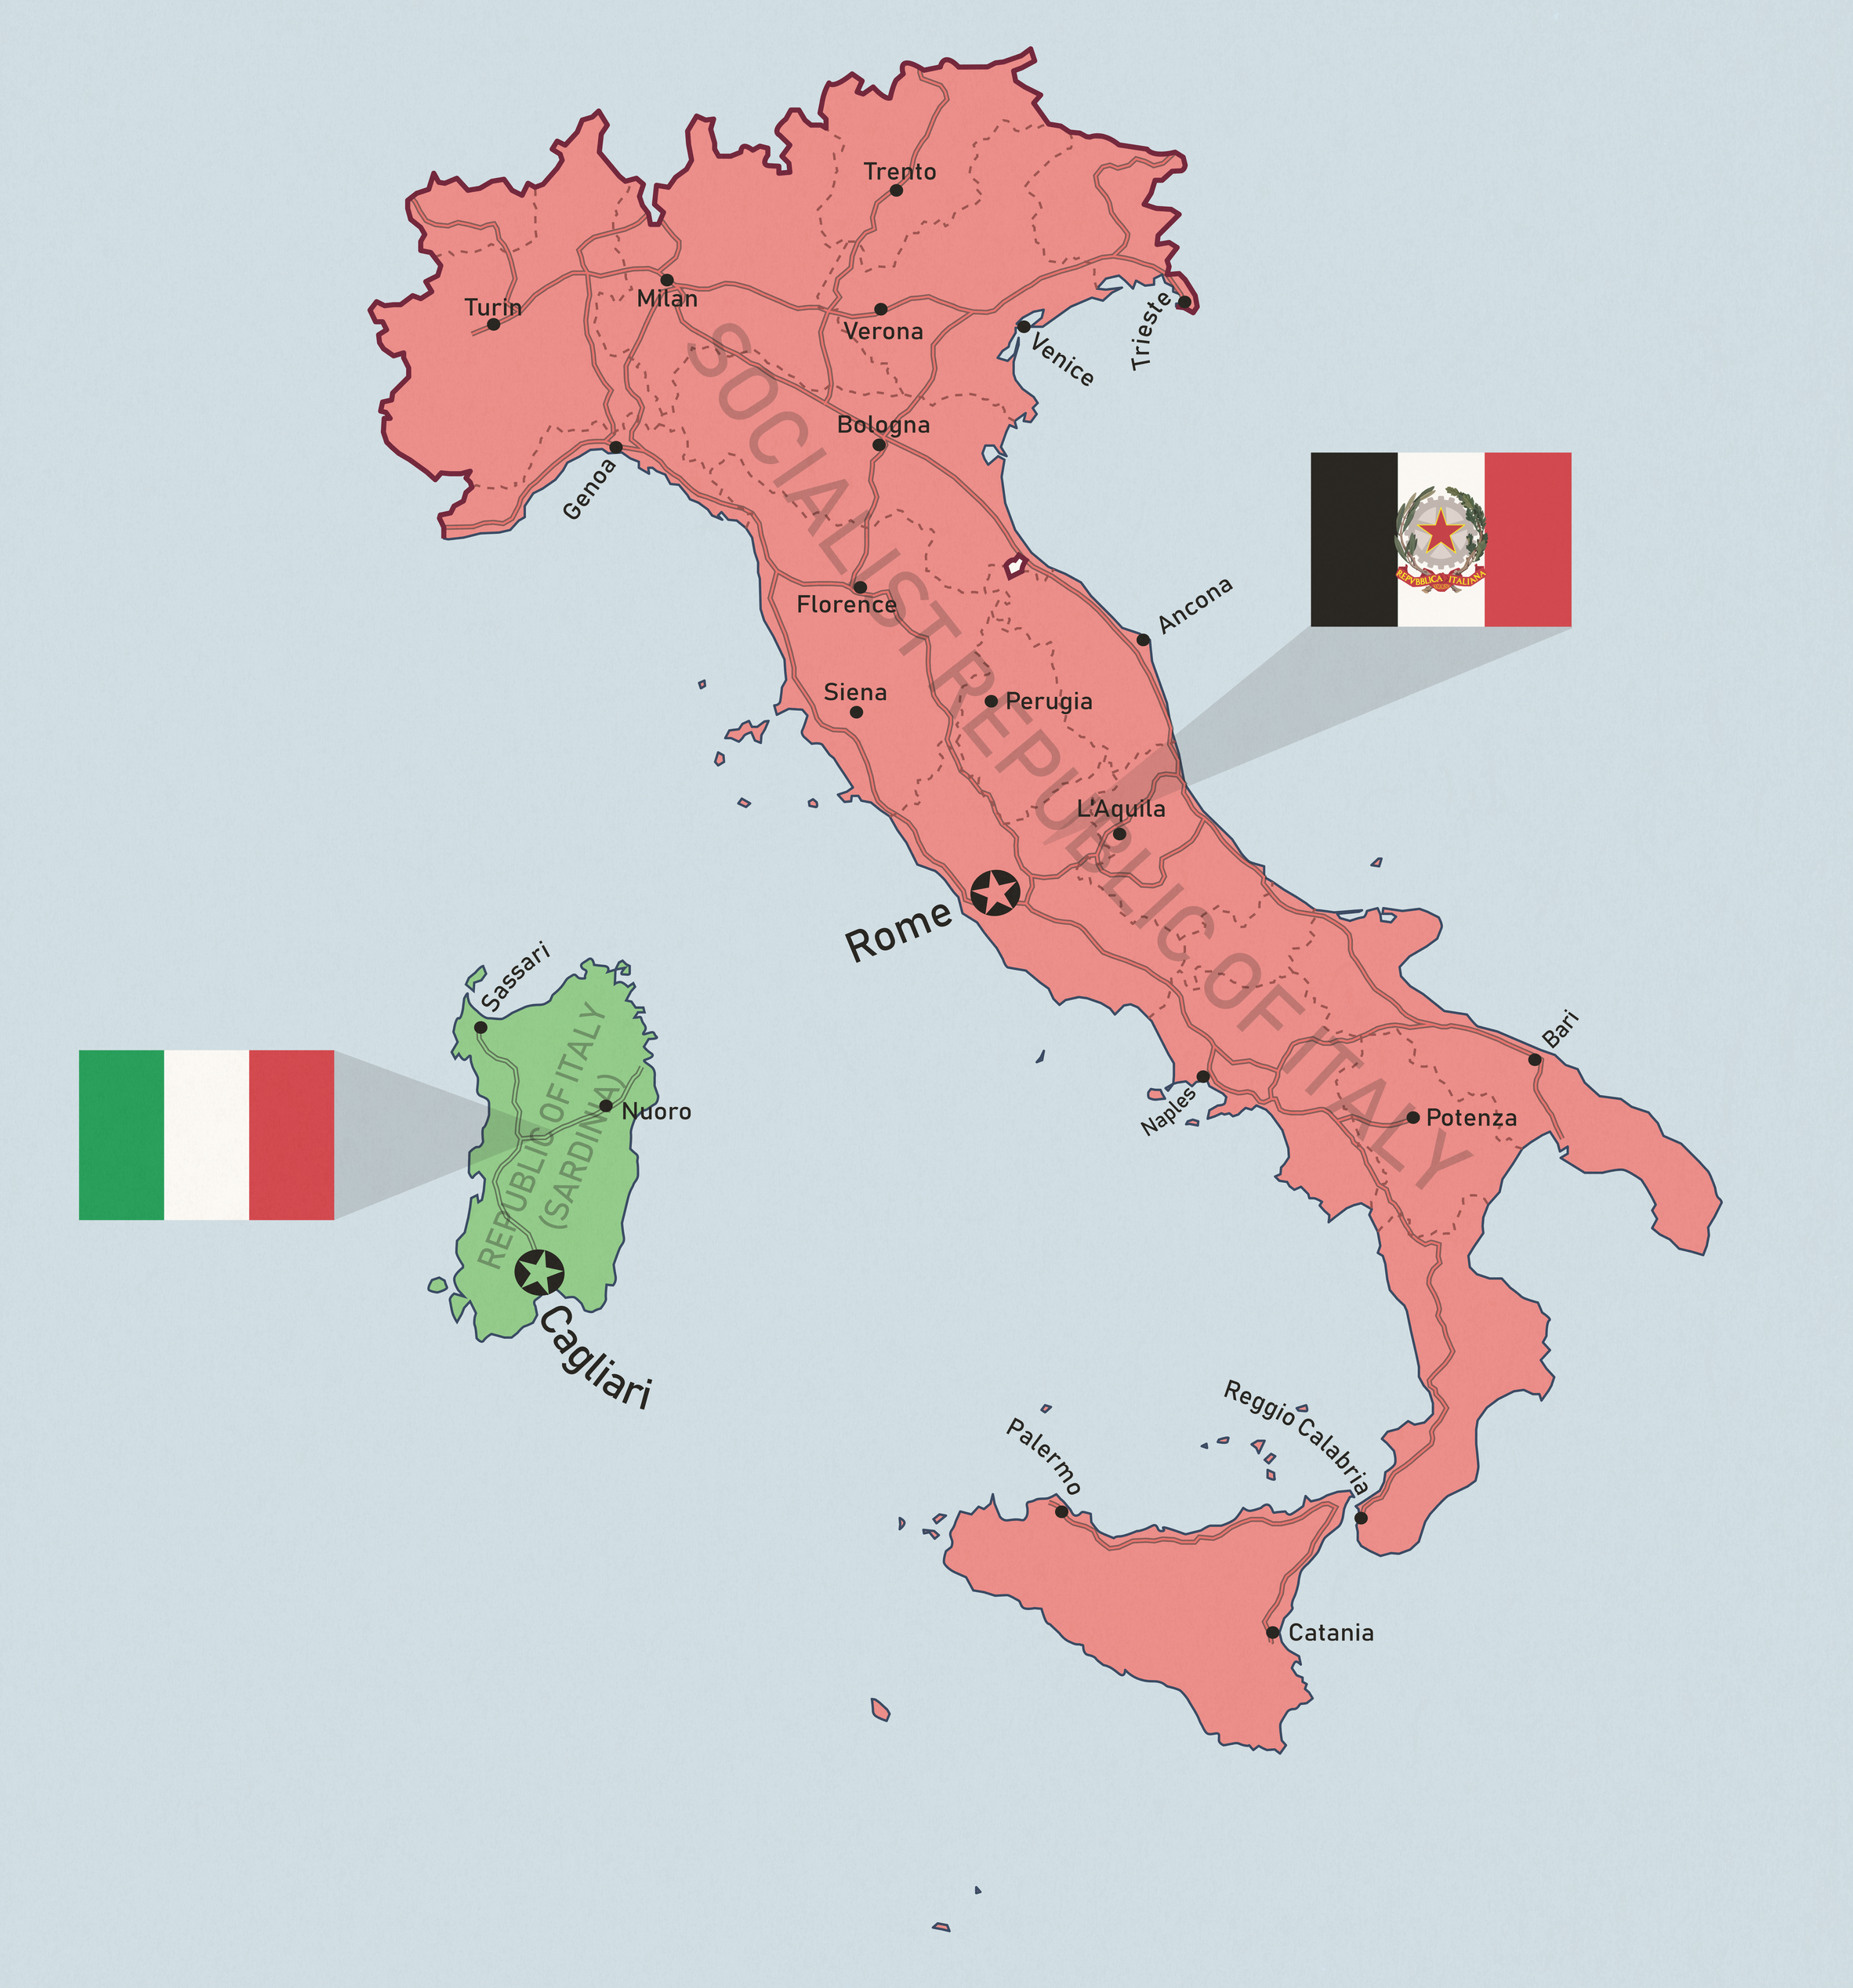 Taiwan-like concept: Italy by Dom-Bul